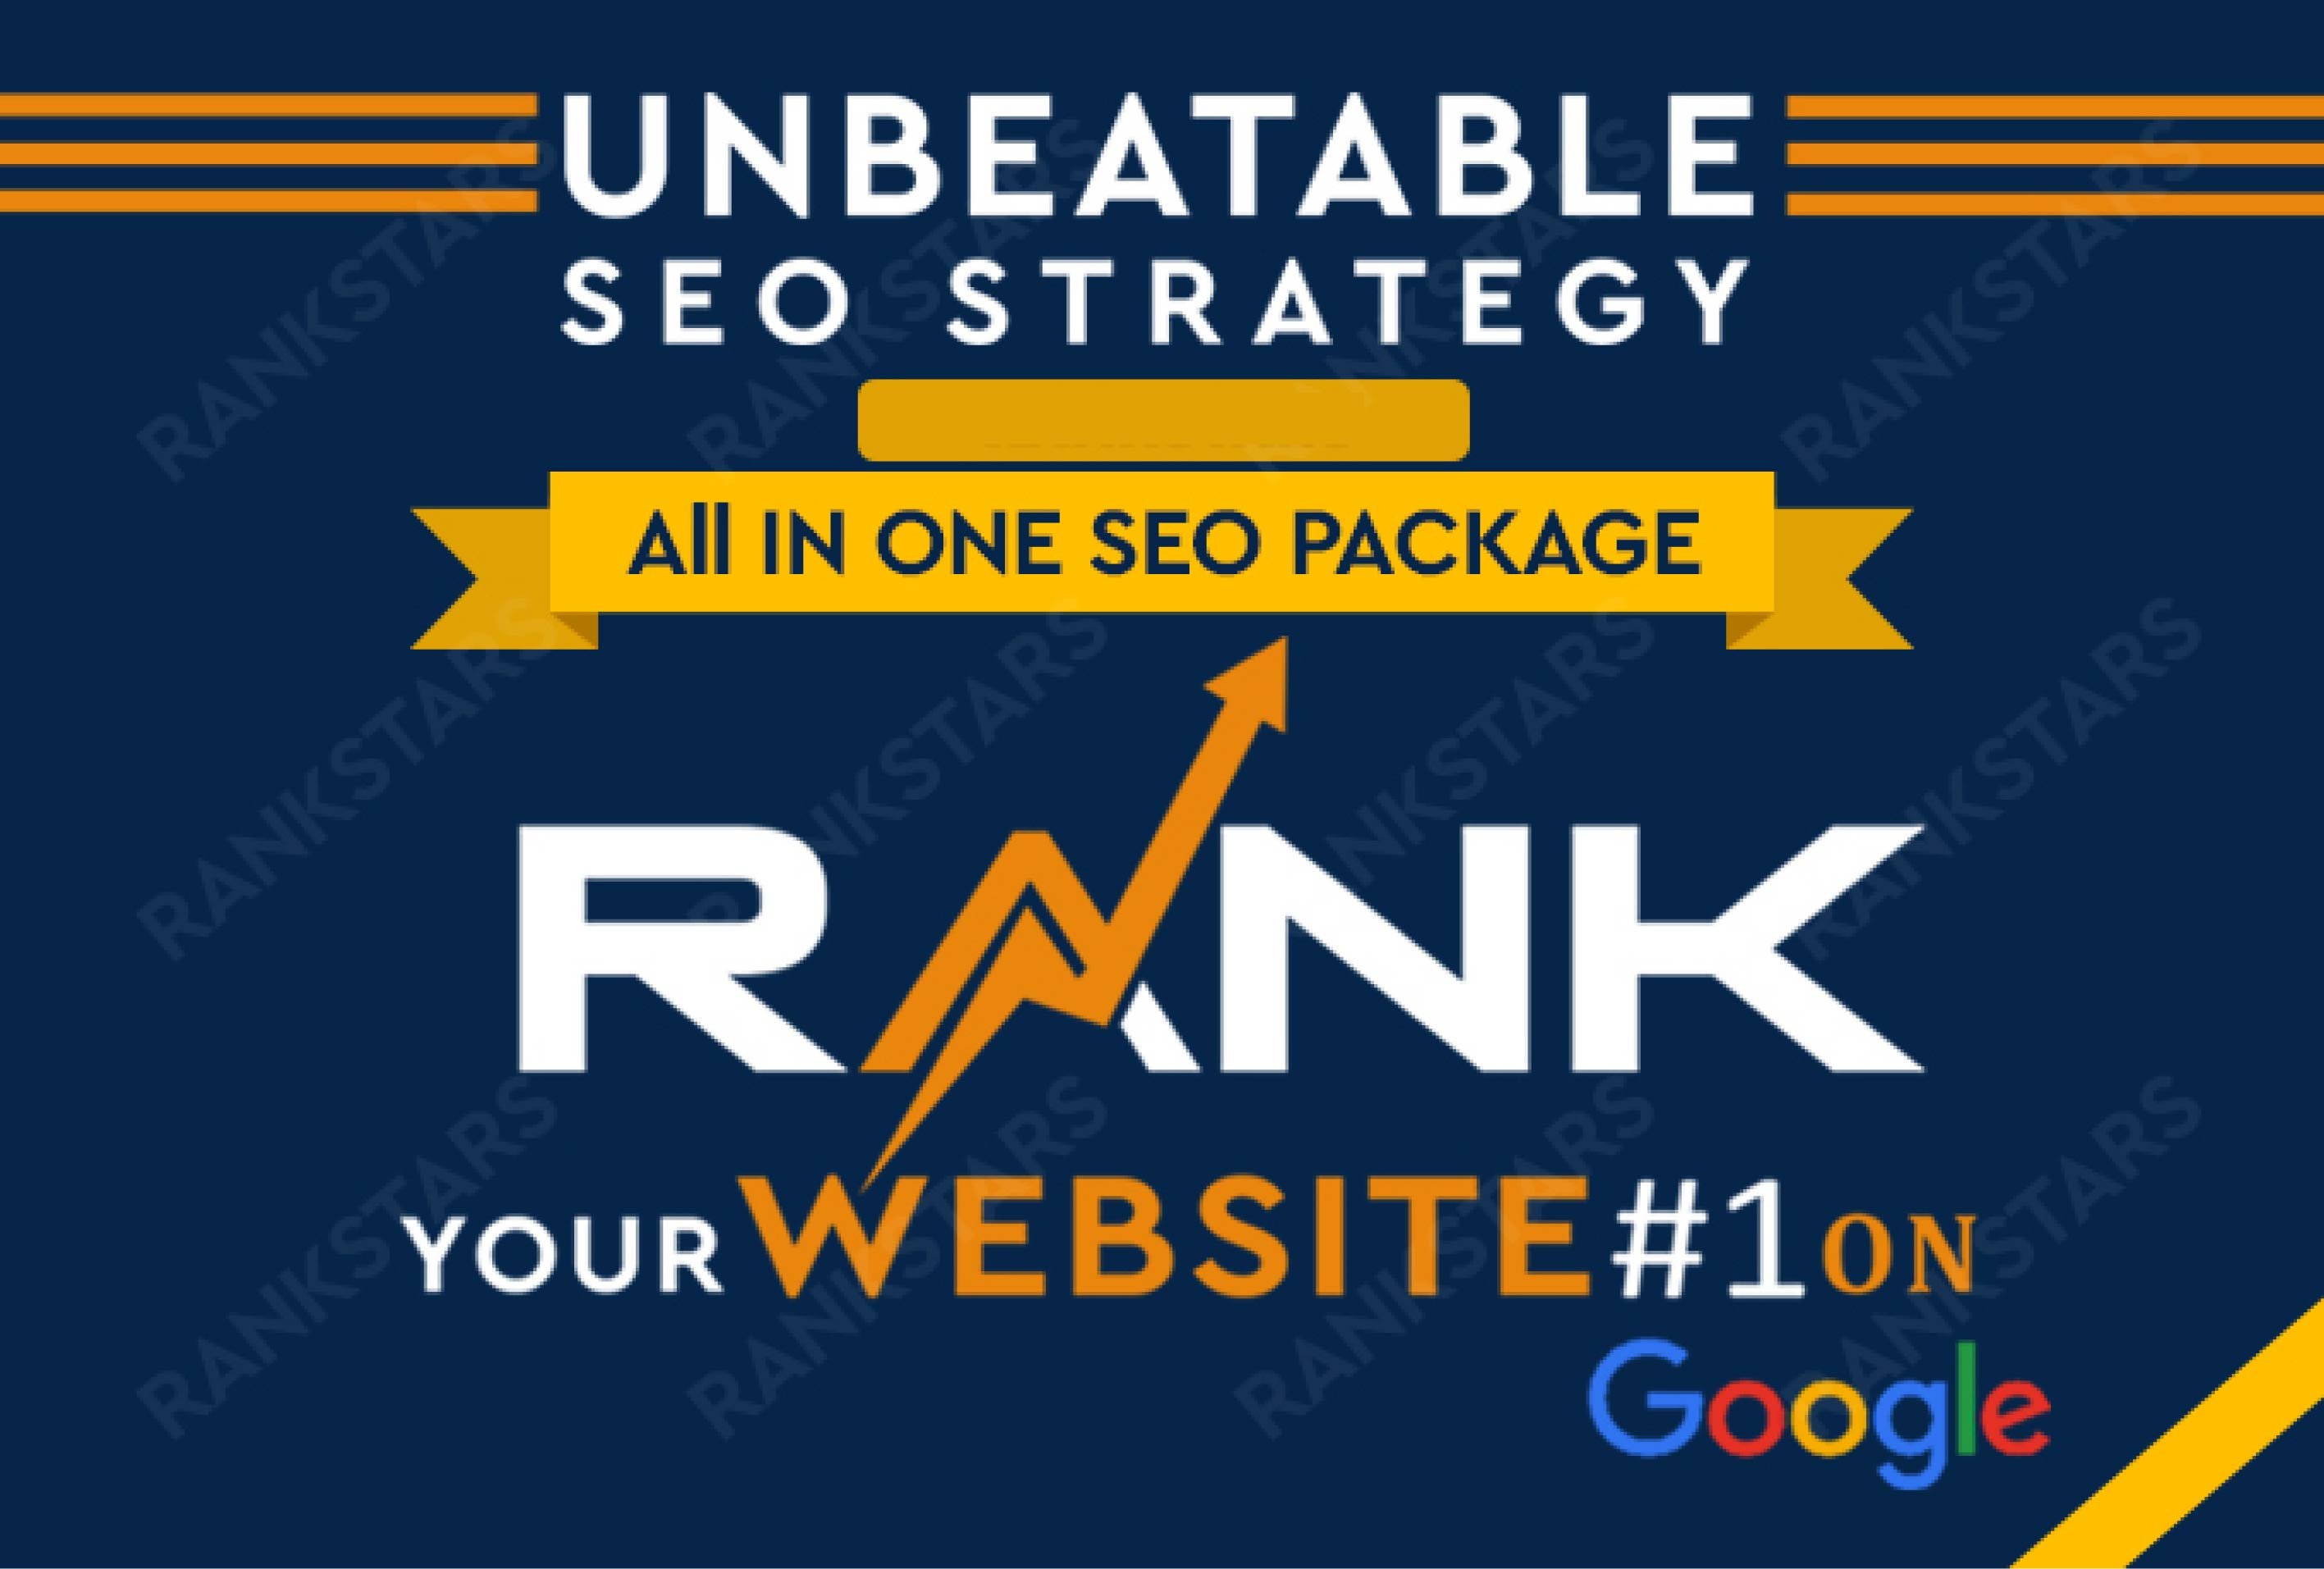 All In One Manual SEO Link Building Service Perfect SEO Strategy 2021 - Google Massive Backlinks